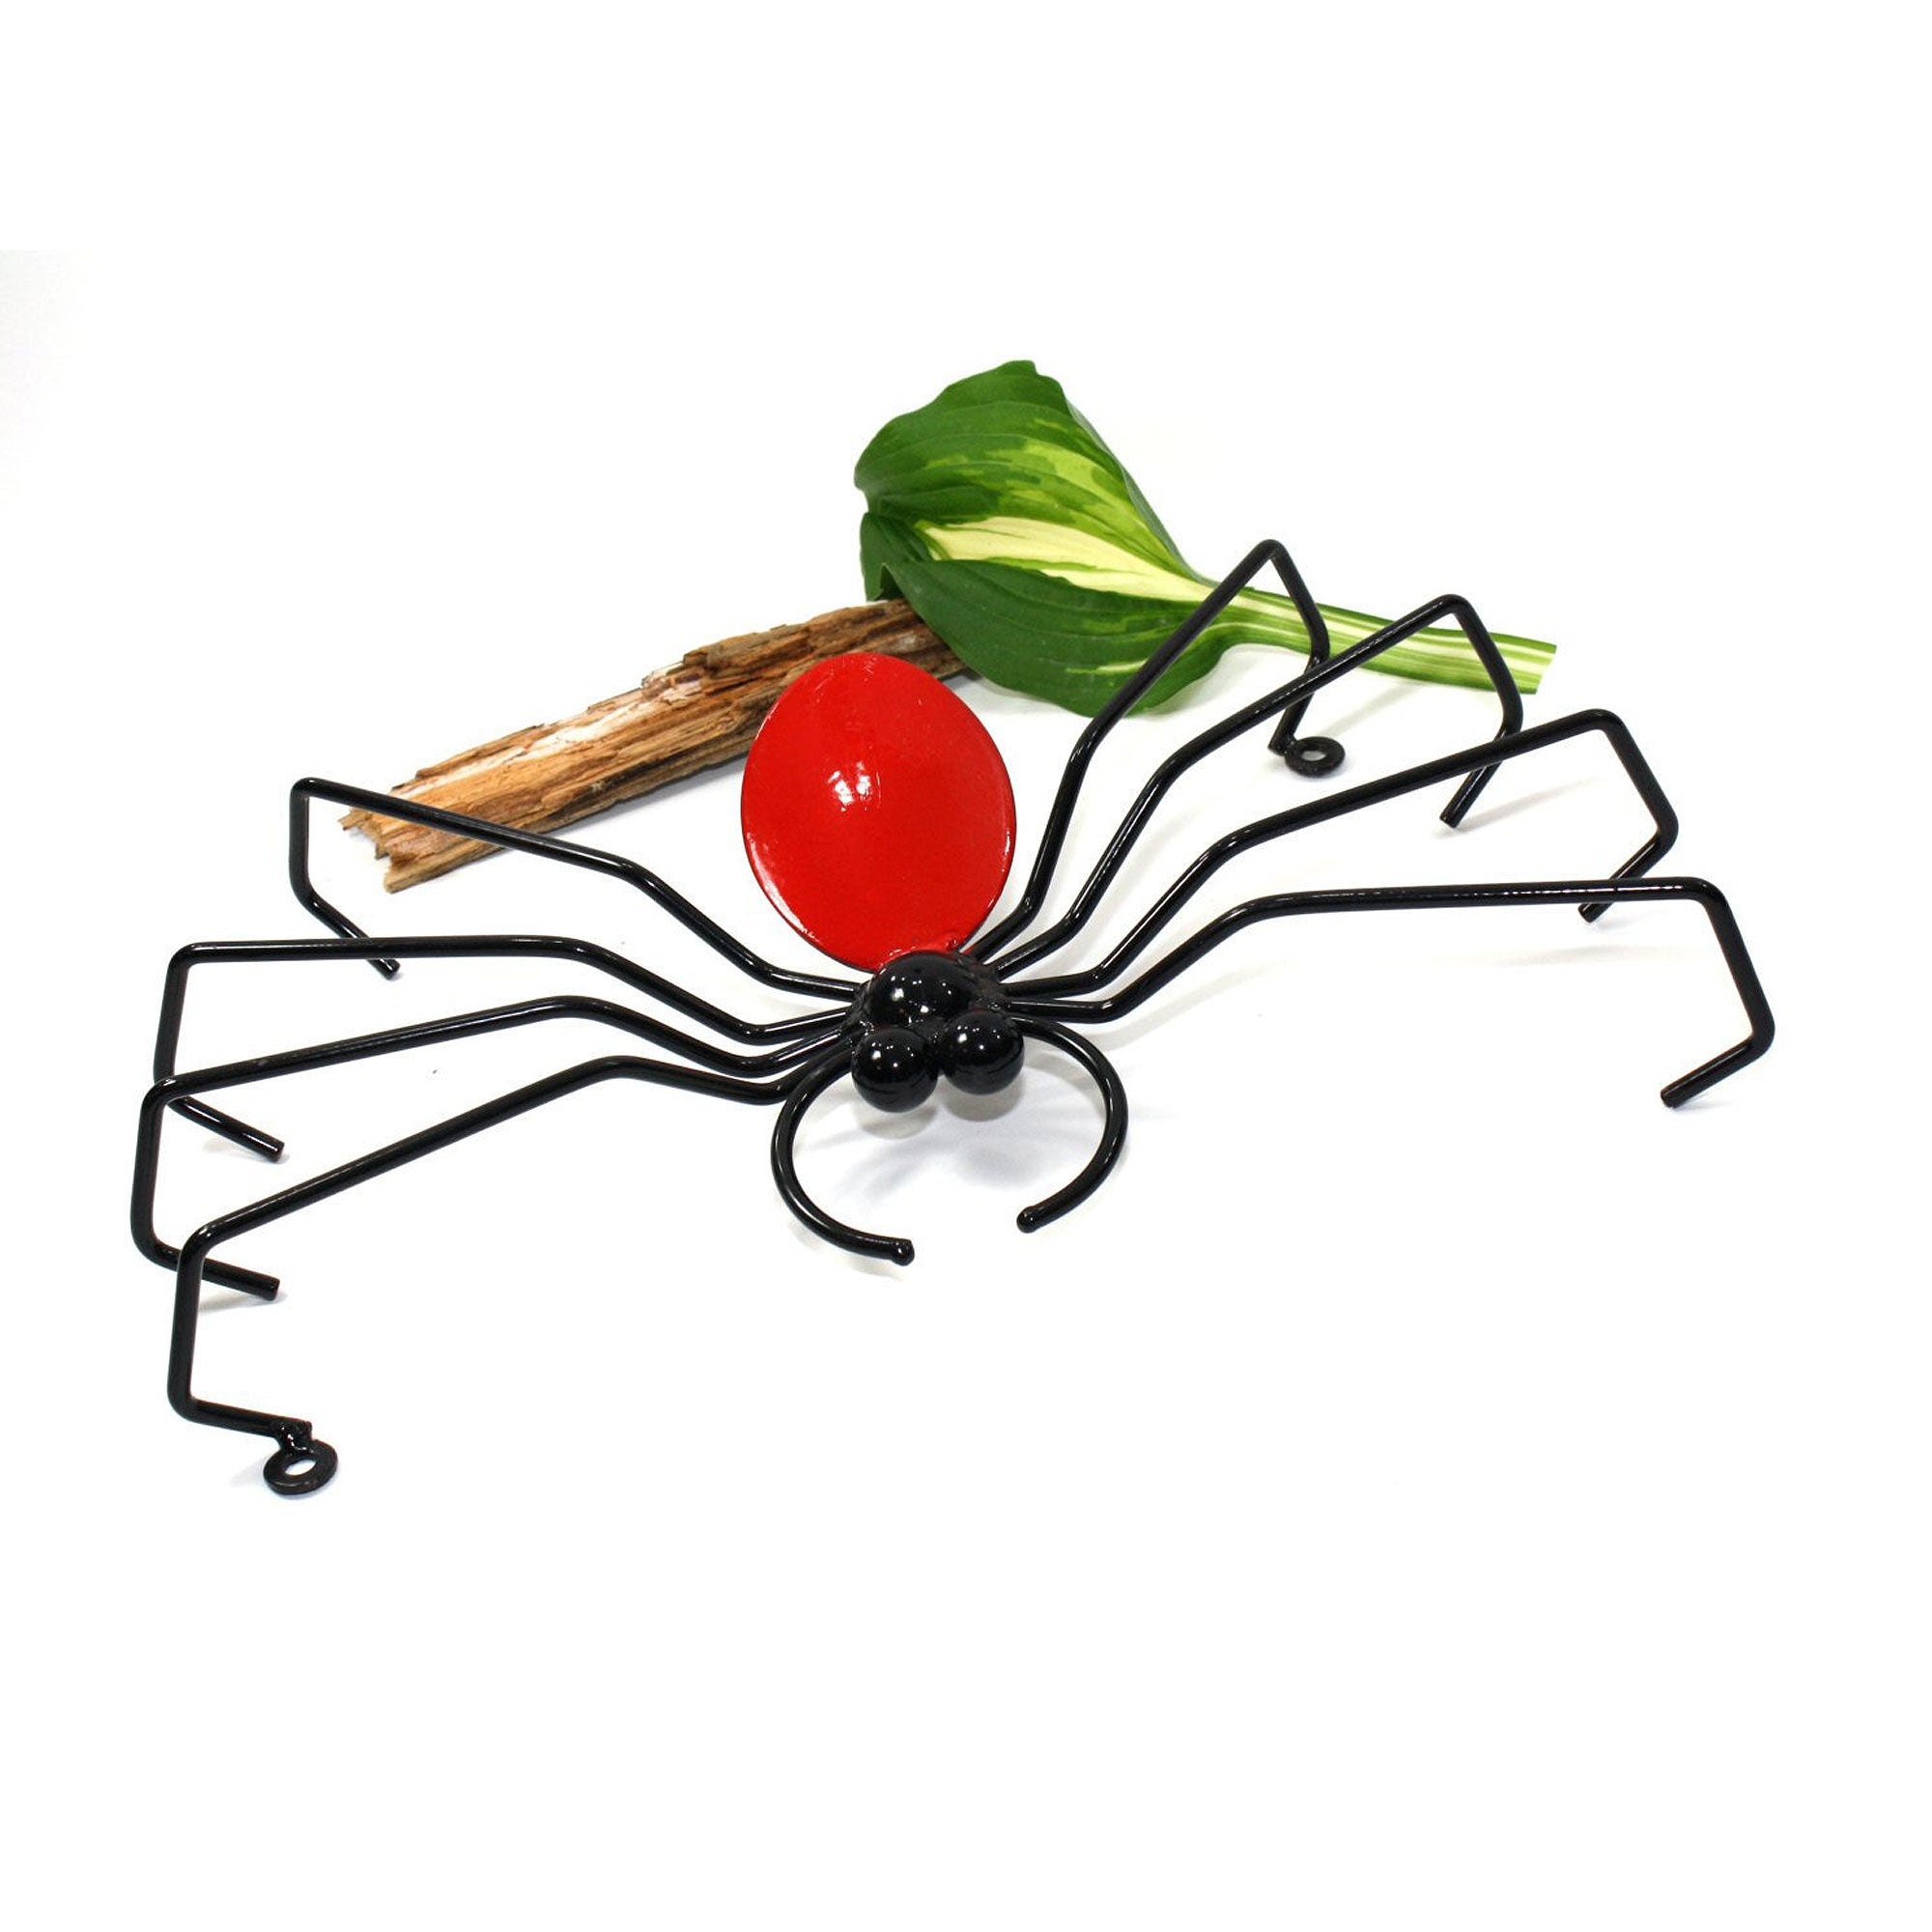 Wall-mounted Metal Art Red Decorative Spider Outdoor Halloween Decorations